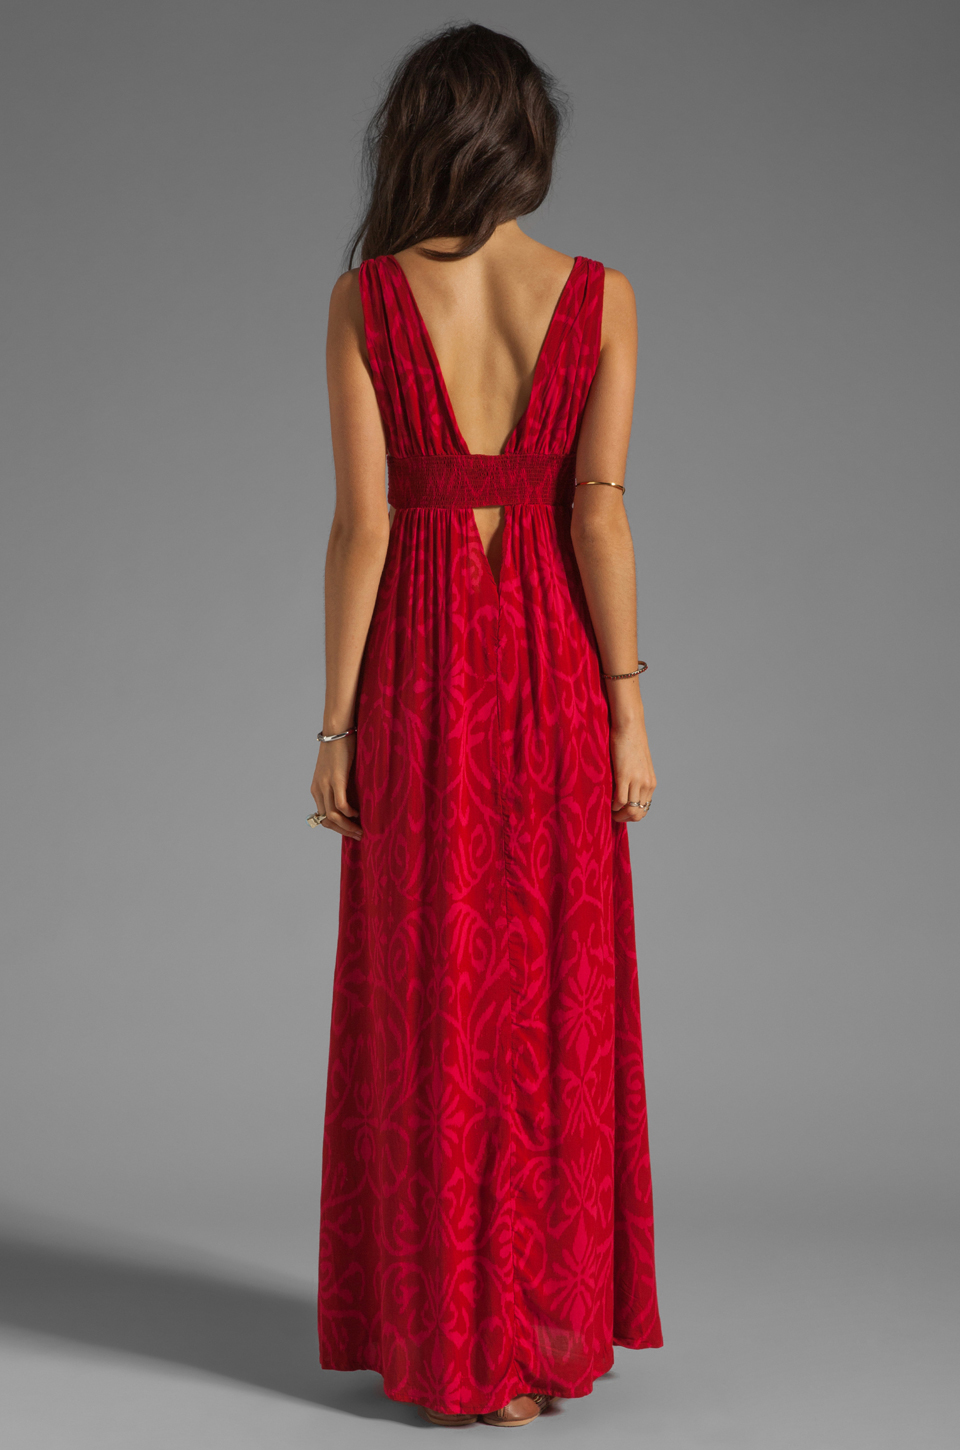 Indah Anjeli Empire Maxi Dress in Antik Red